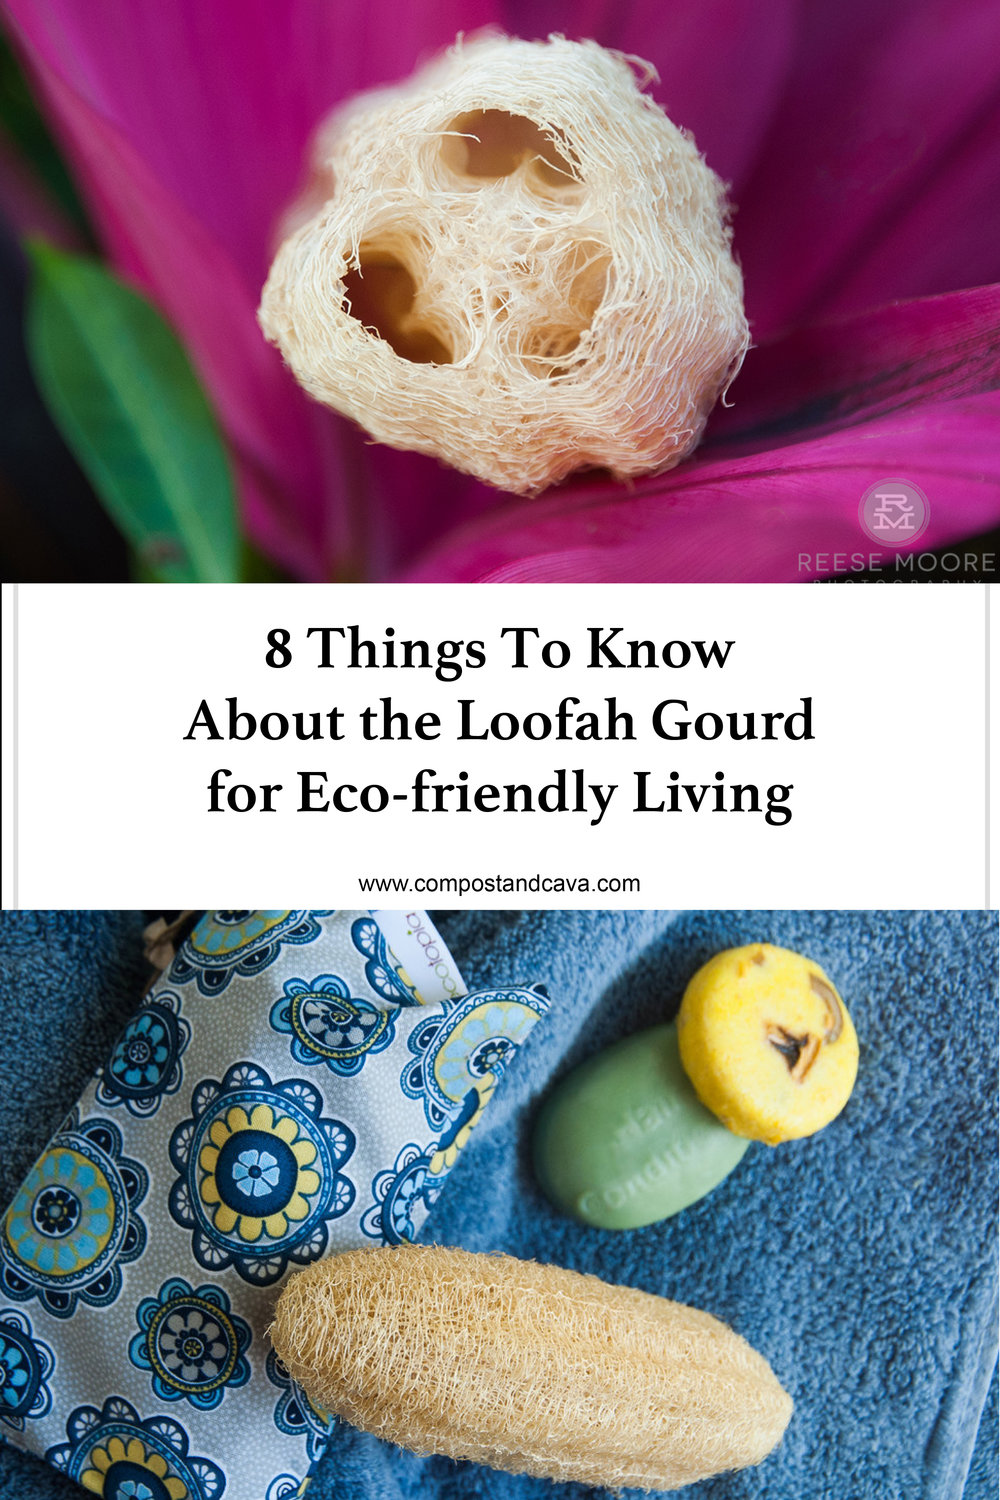 8 Awesome Things To Know About The Loofah Gourd for Eco-Friendly Living